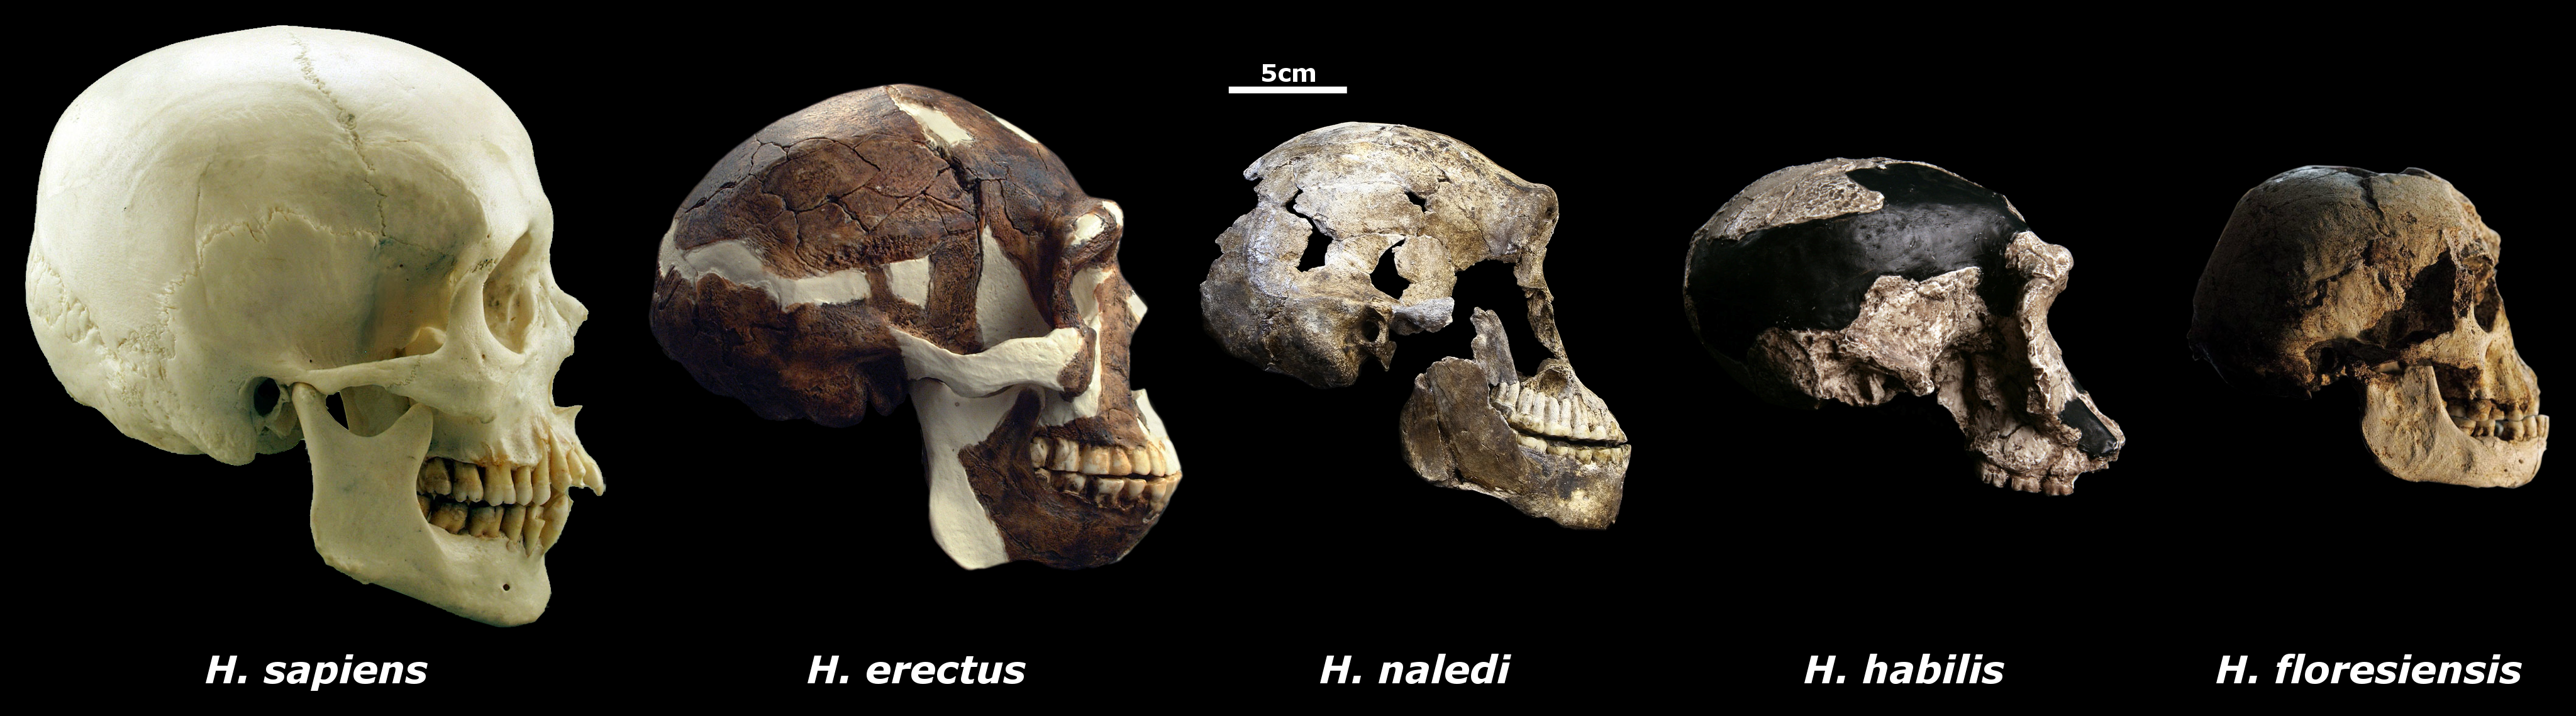 Radiometric dating human fossils found